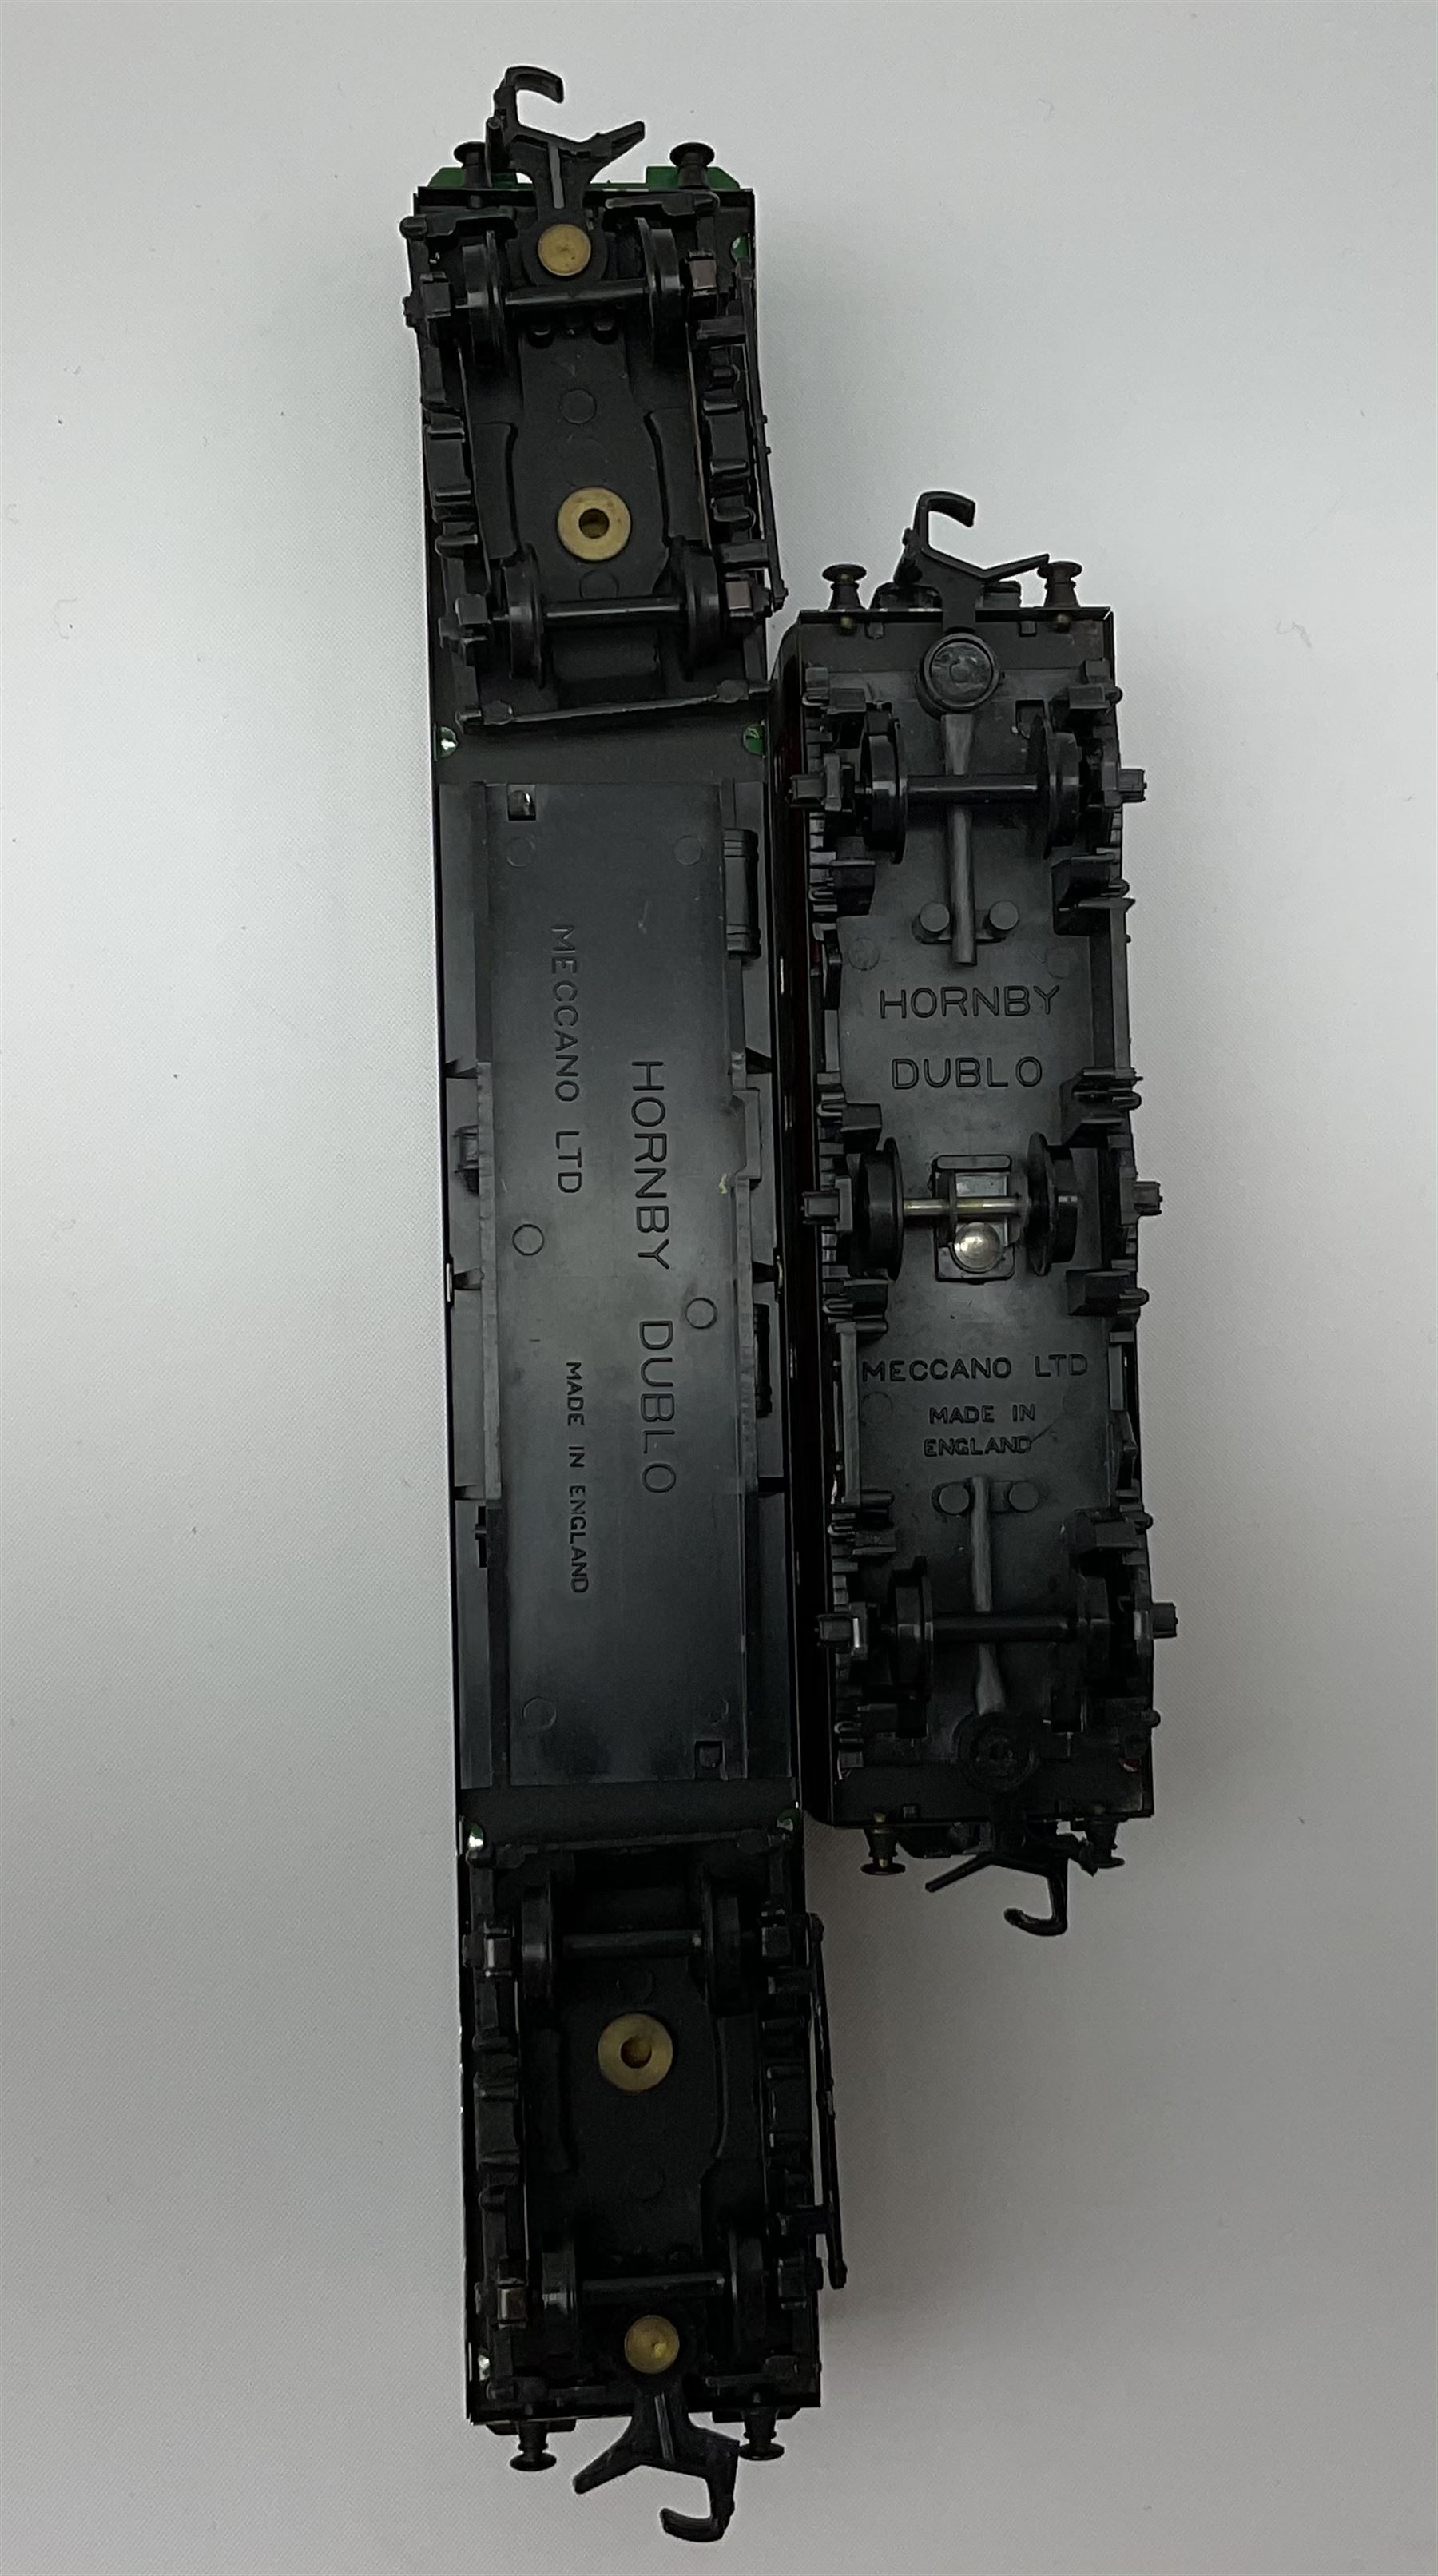 Hornby Dublo - 4076 Six- Wheeled Passenger Brake Van; and 4150 Electric Driving Trailer Coach S.R.; - Image 4 of 4